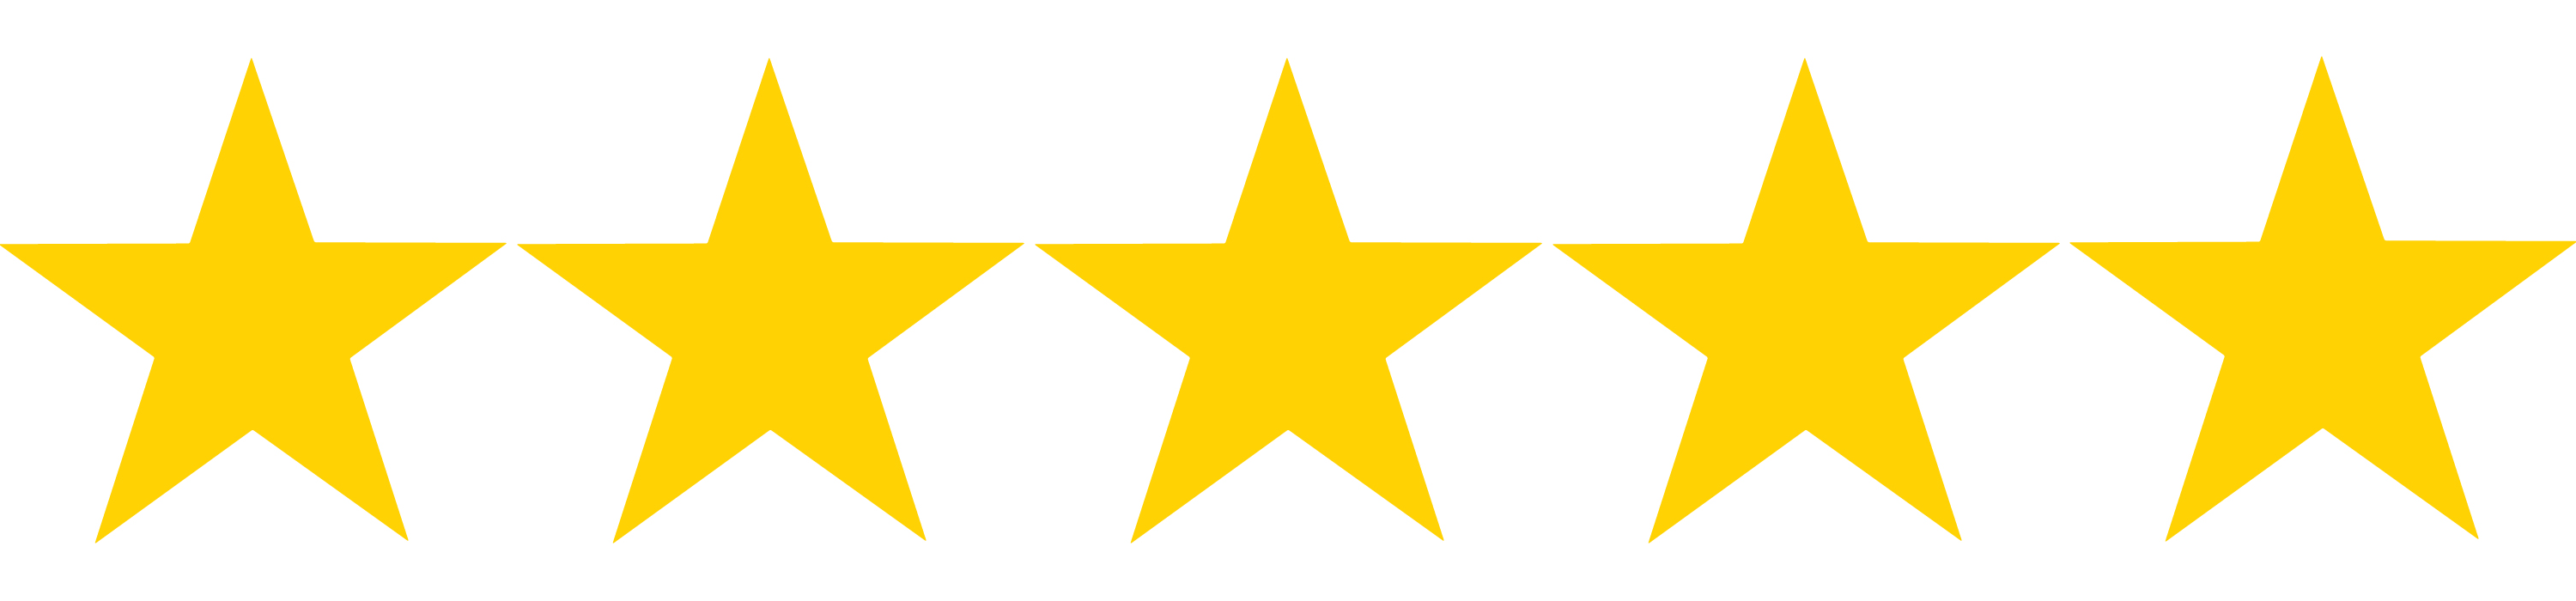 3000x700 Is There A Way To Create Rating Images (5 Stars, 4 Stars, 3 Stars